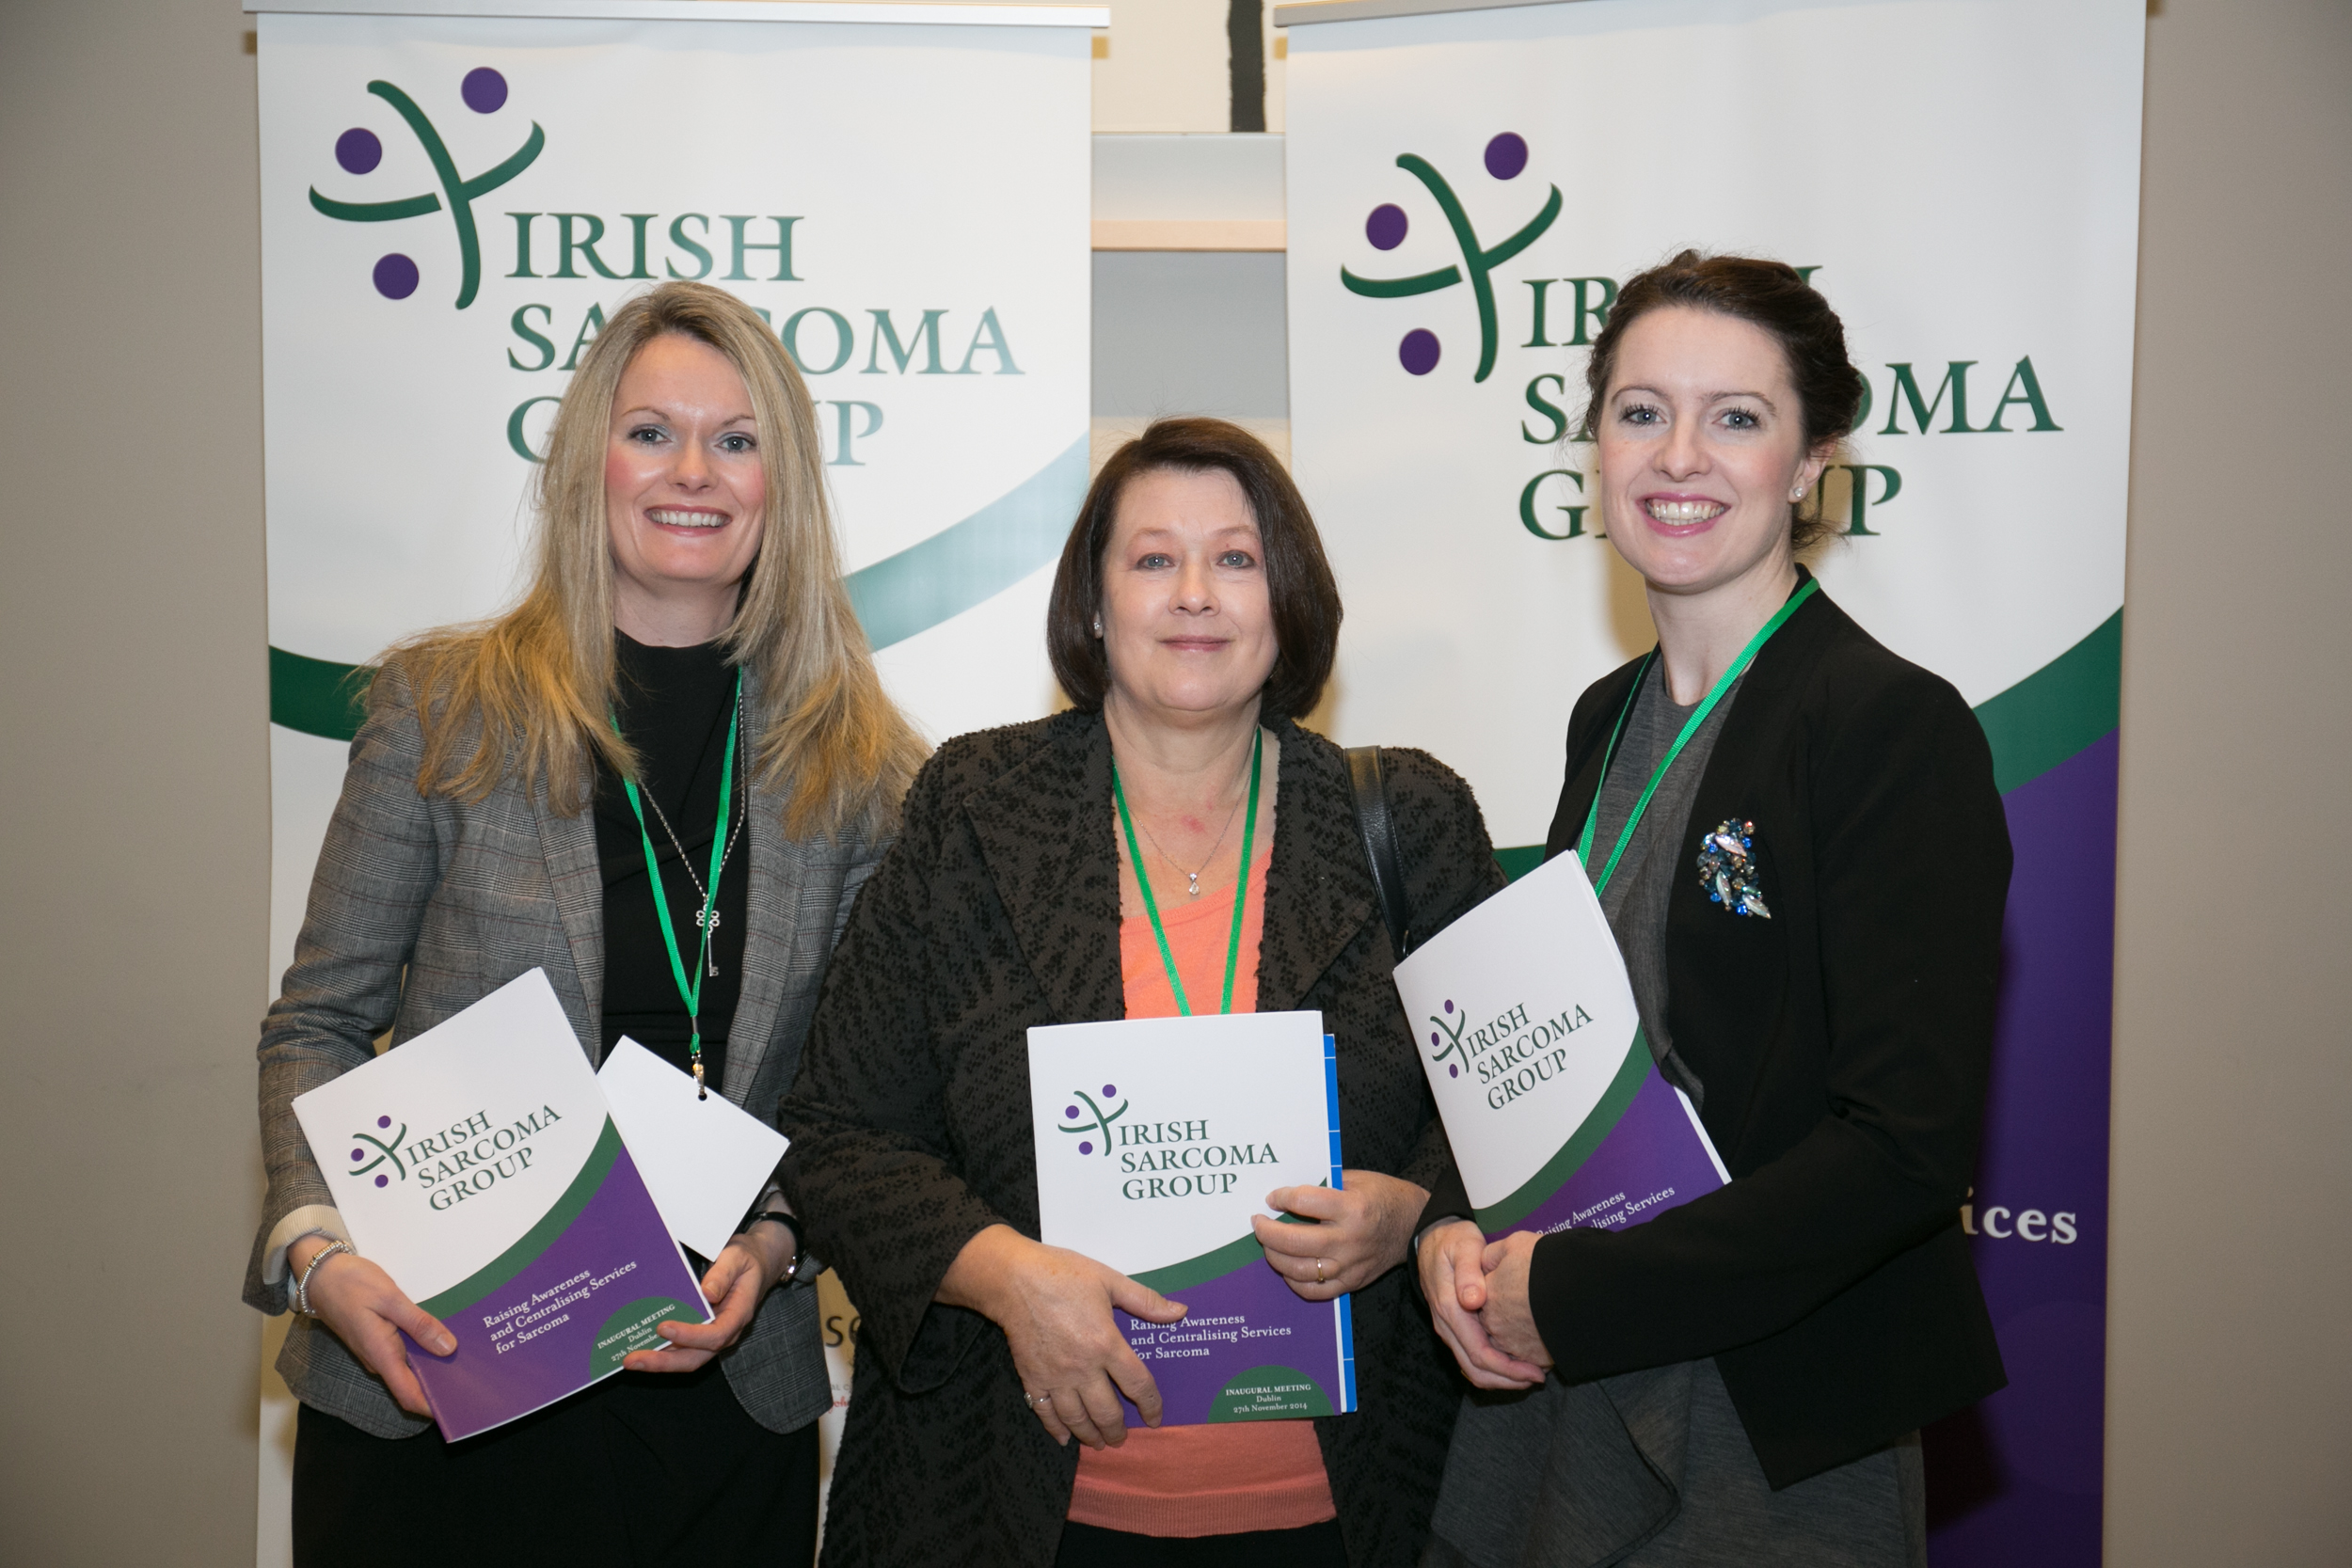 Dr Lorrian Walsh, Radiation Oncologist, Limerick Hospital. Dr Catriona O'Sullivan, Paediatric Radiation Oncologist. Dr Jennifer Gilmore, Radiation Oncologist, Cork University Hospital